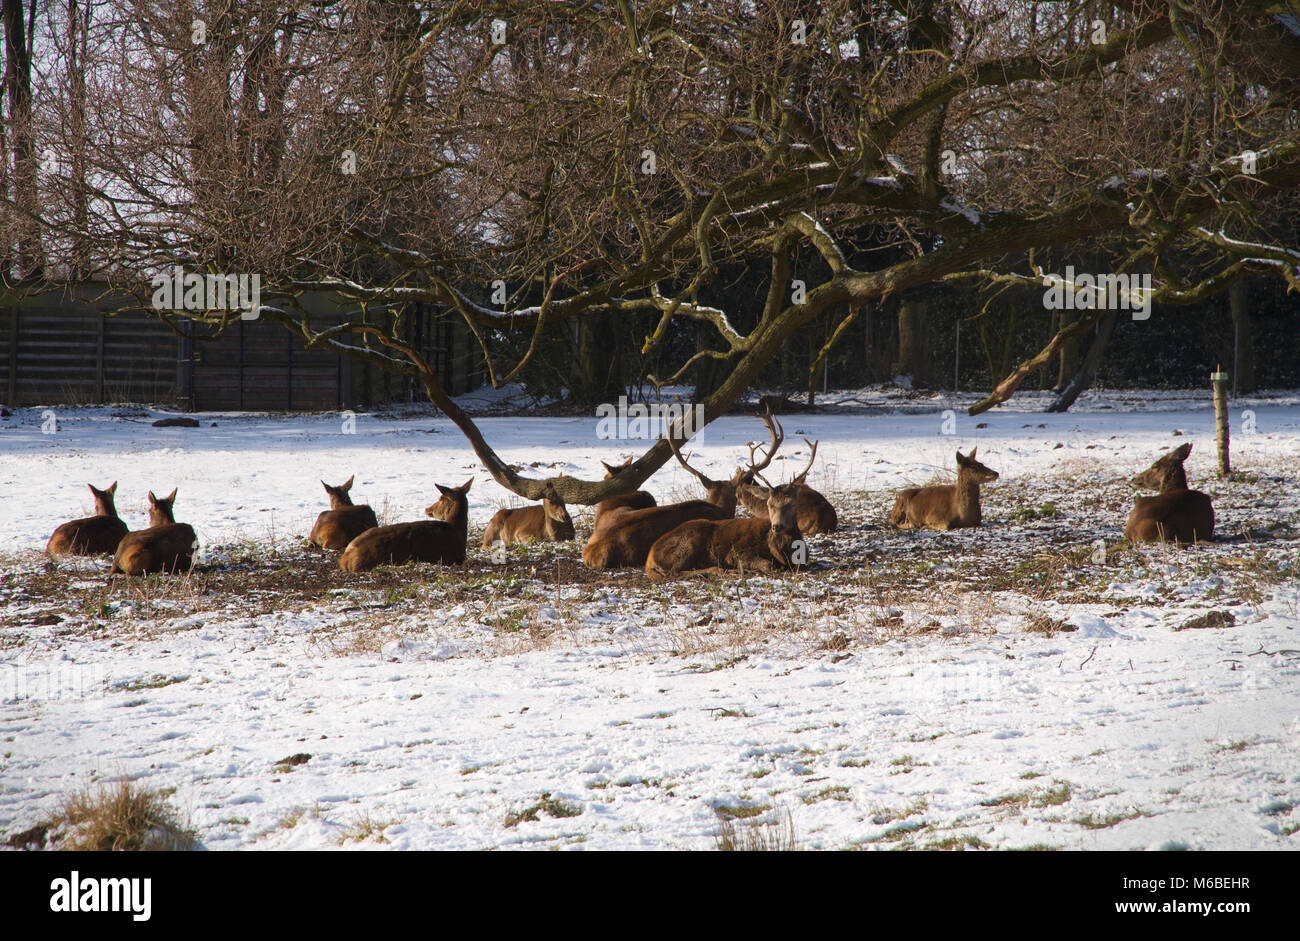 Herd of Red Deer sheltering from the snow in Bedfords Park in the London Borough of Havering in Essex. - Stock Image